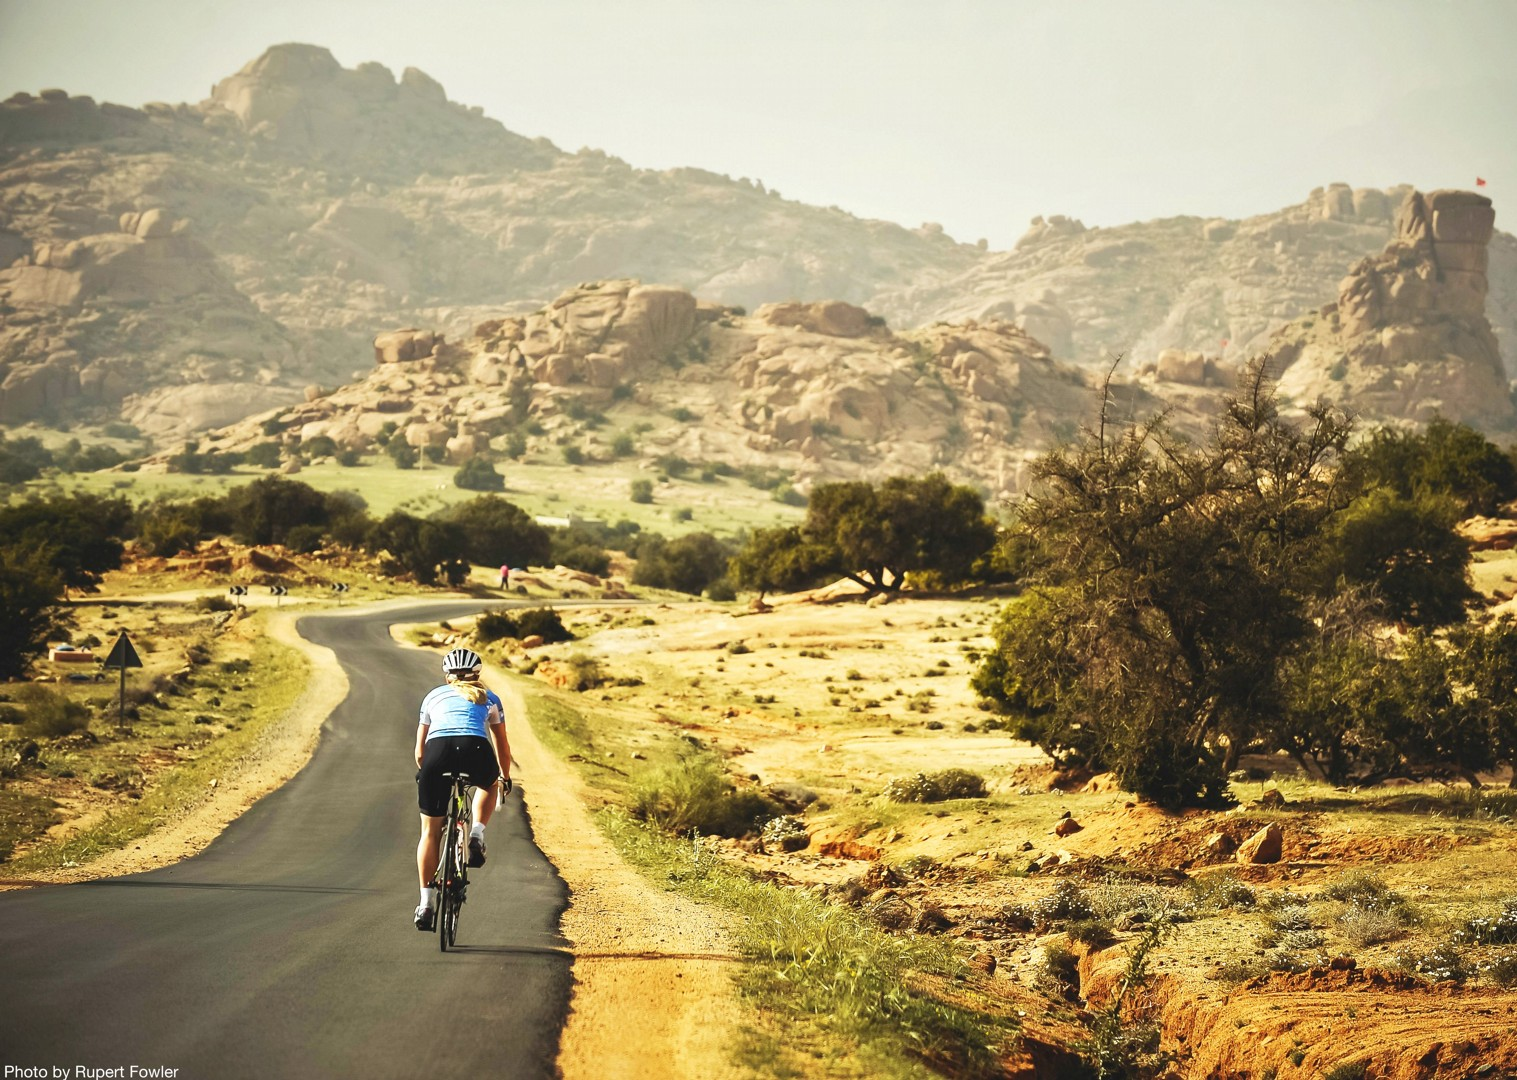 road-cycling-morocco-road-atlas.jpg - Morocco - Road Atlas - Road Cycling